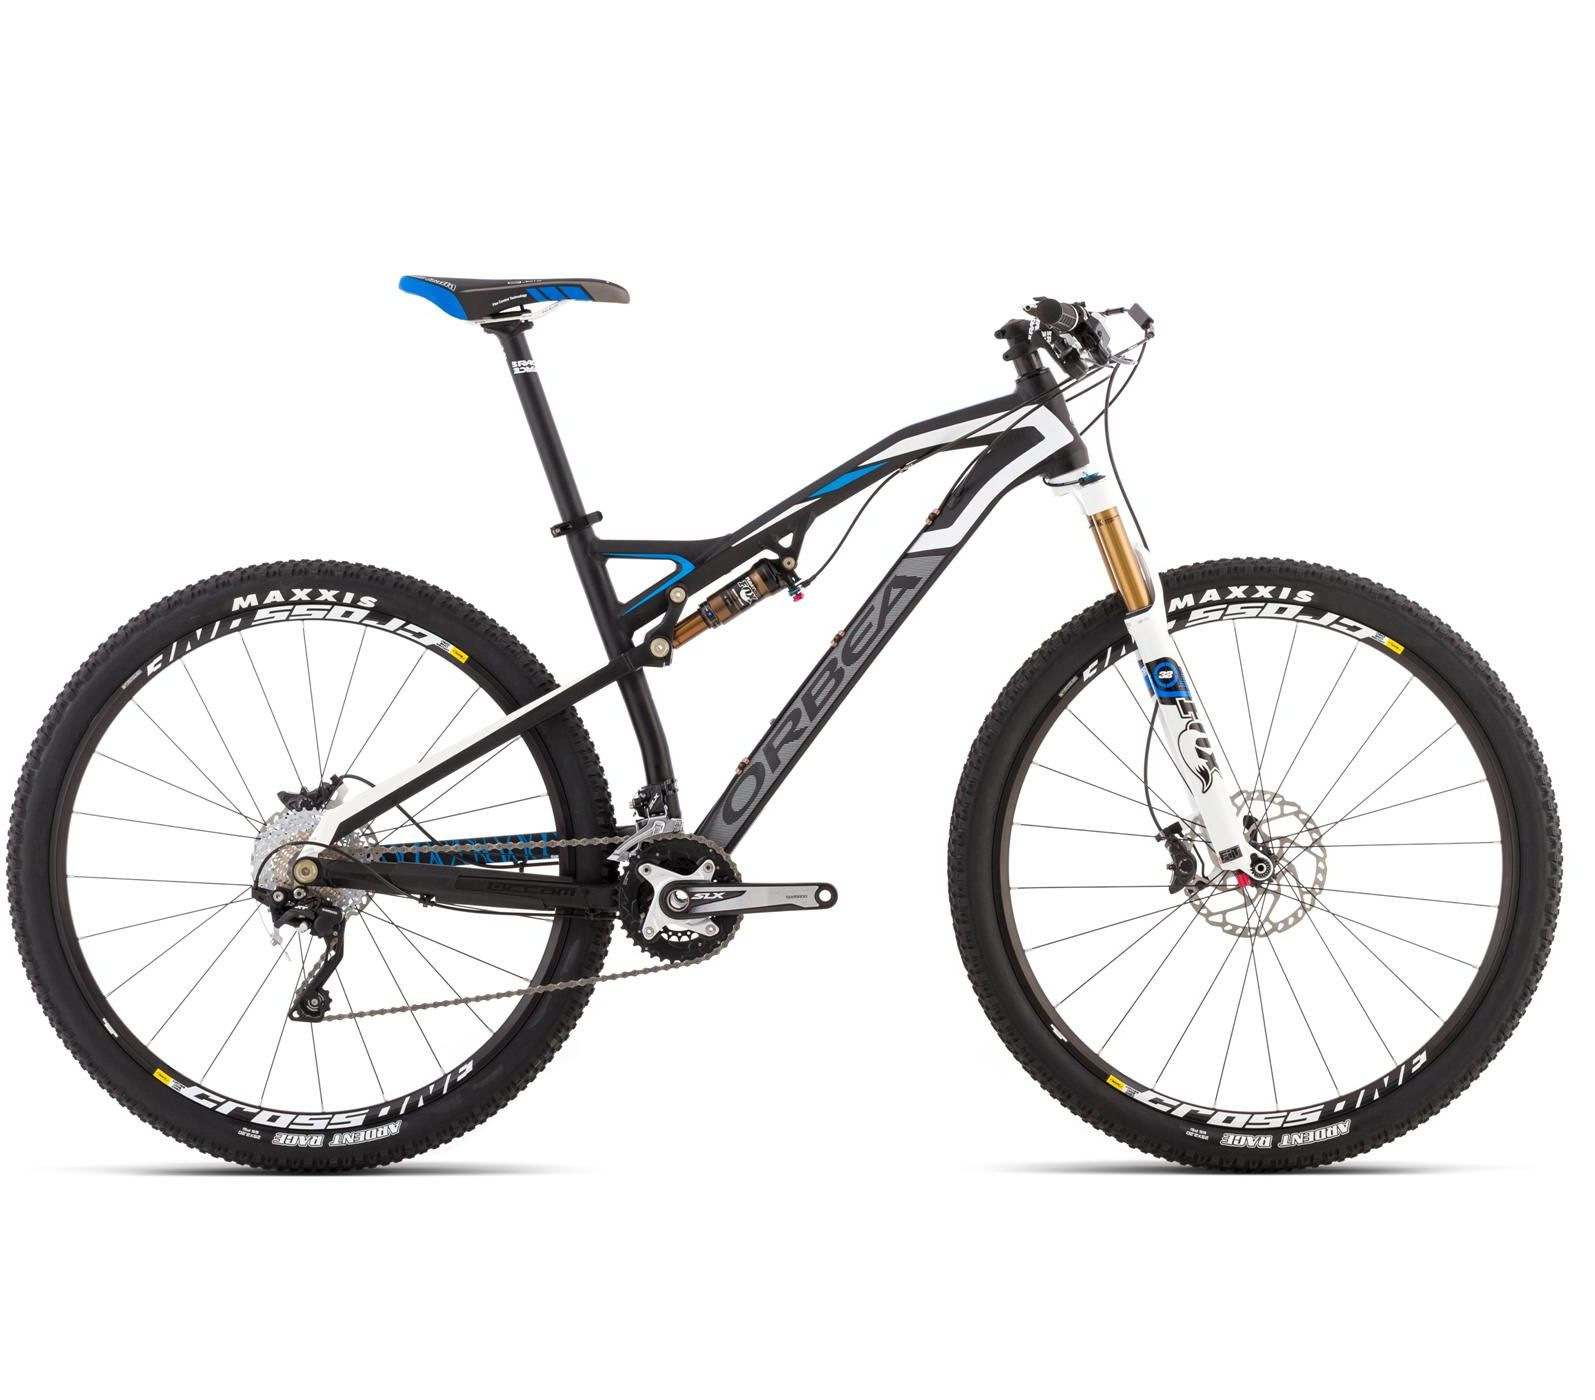 Orbea OCCAM 29 H10 2015 review - The Bike List